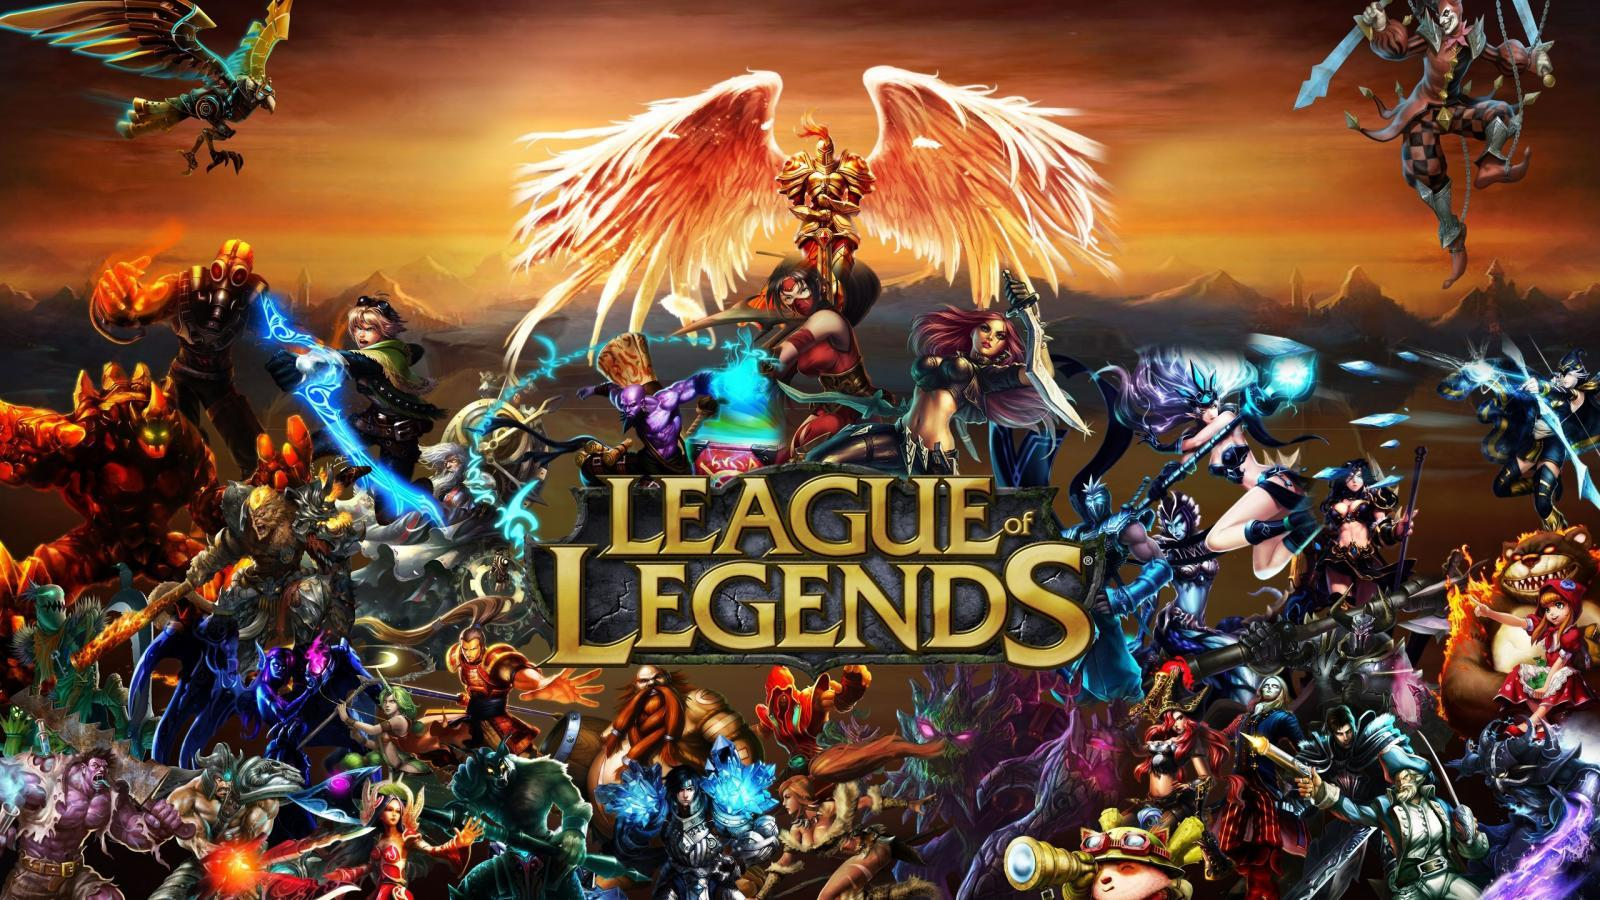 The cover for League of Legends.